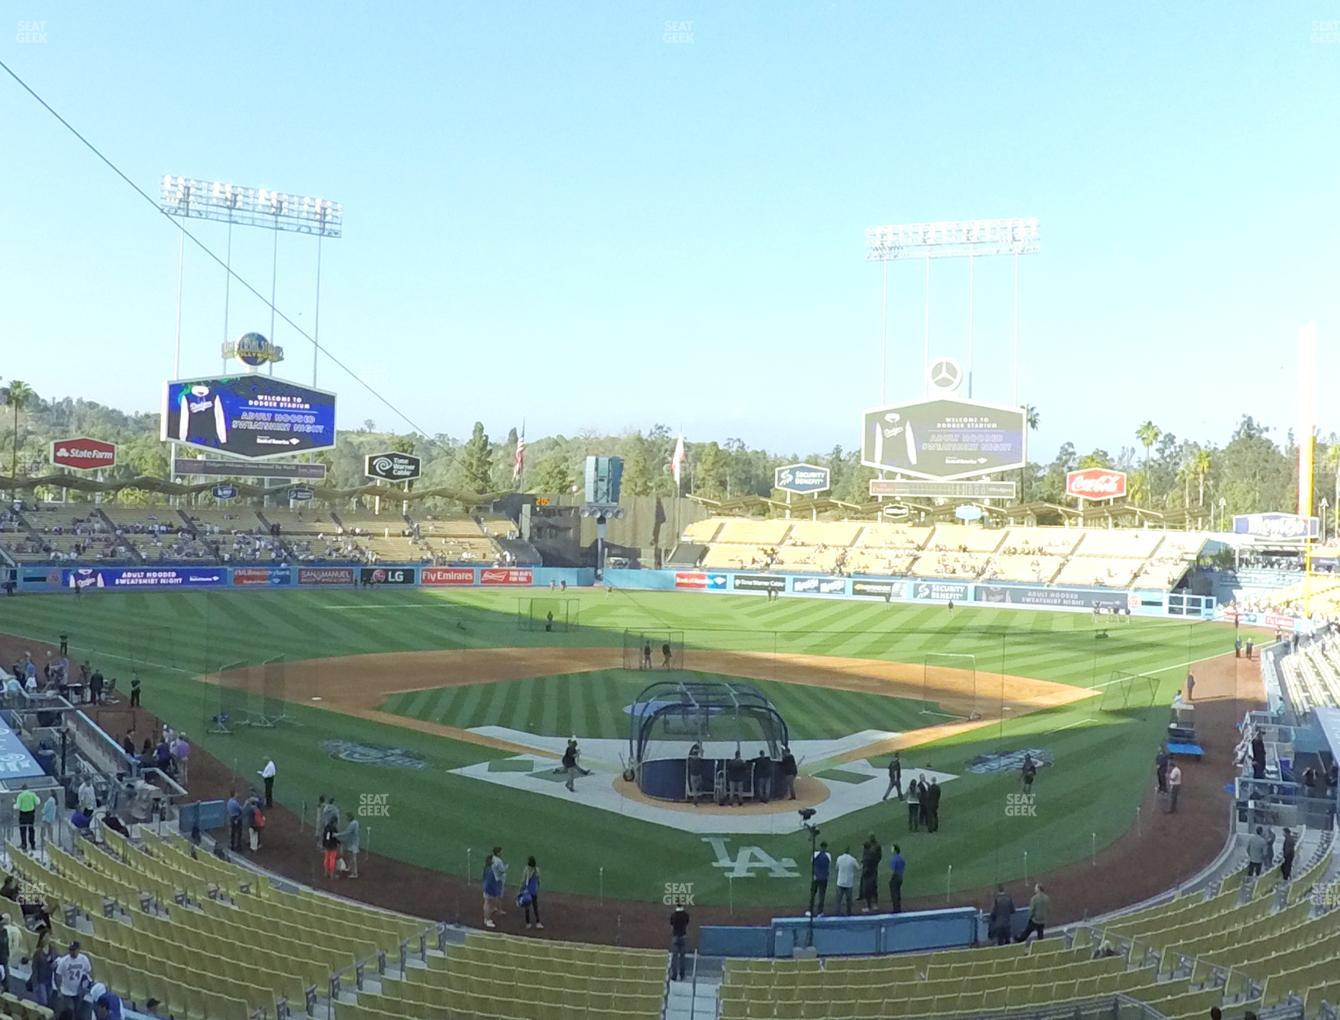 Los Angeles Dodgers at Dodger Stadium Loge Box 103 View